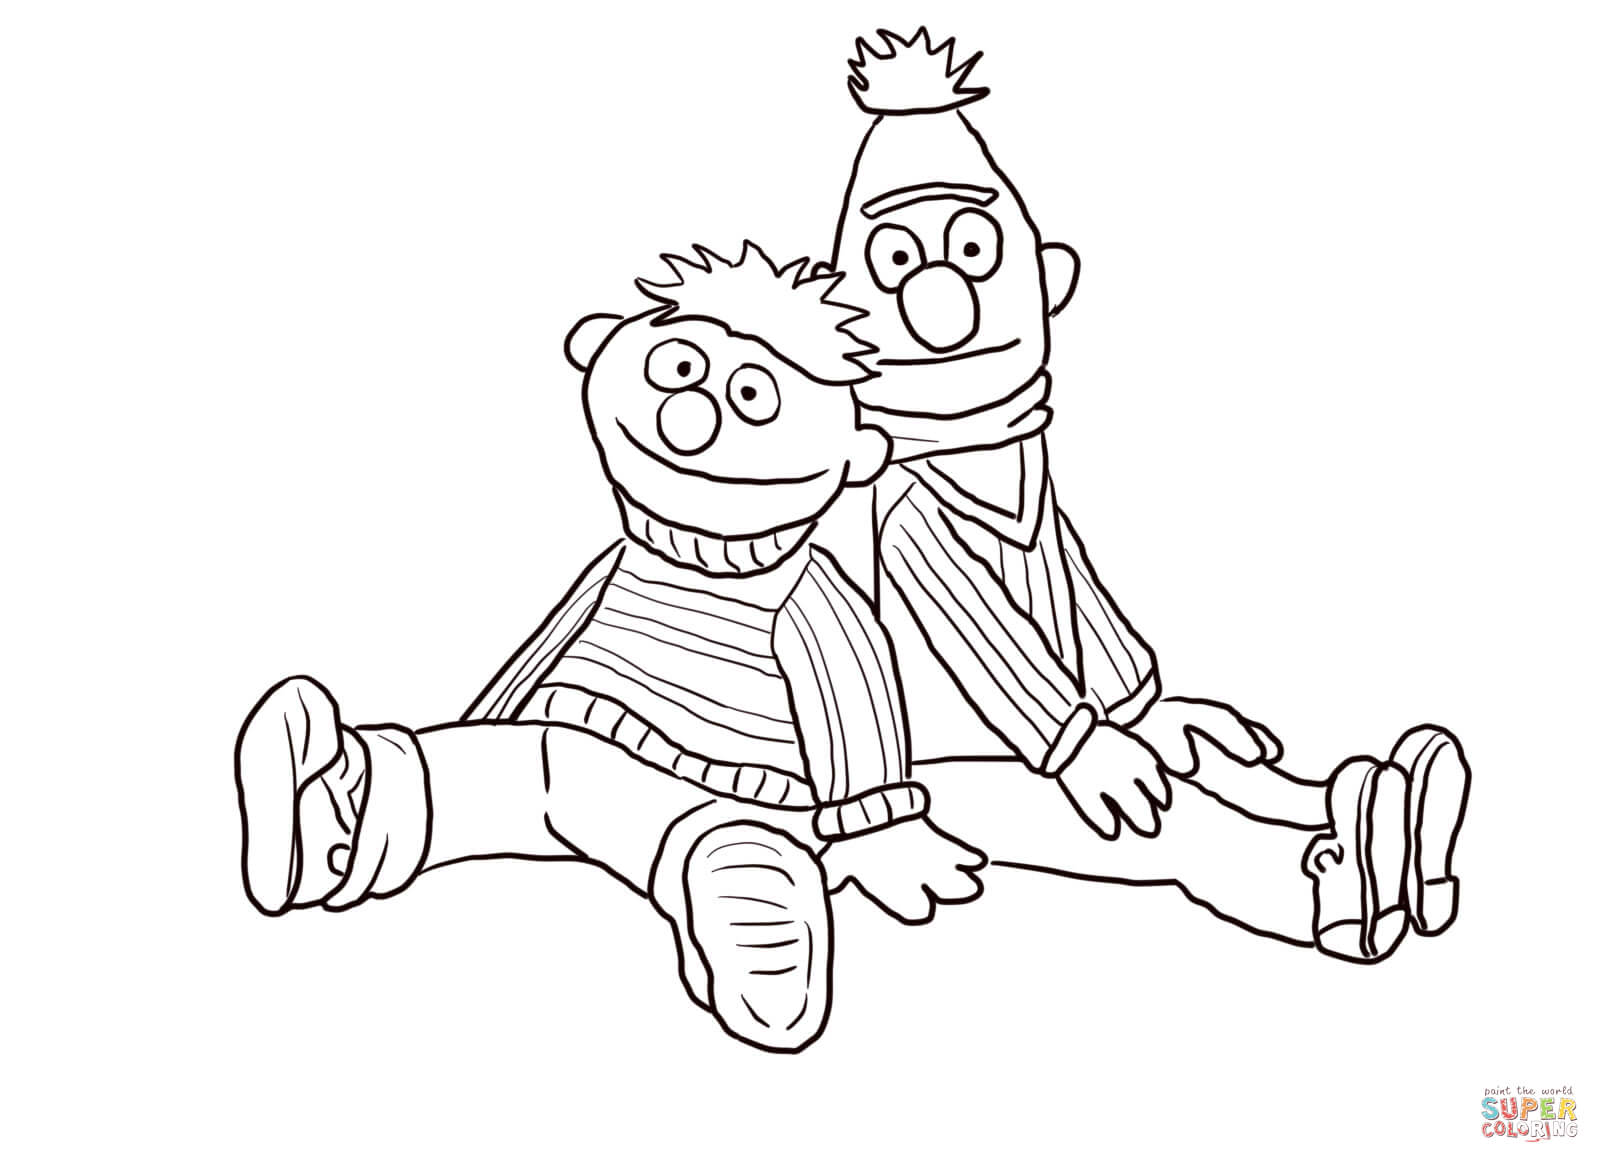 Bert and Ernie Sitting and Leaning coloring page | Free Printable ...